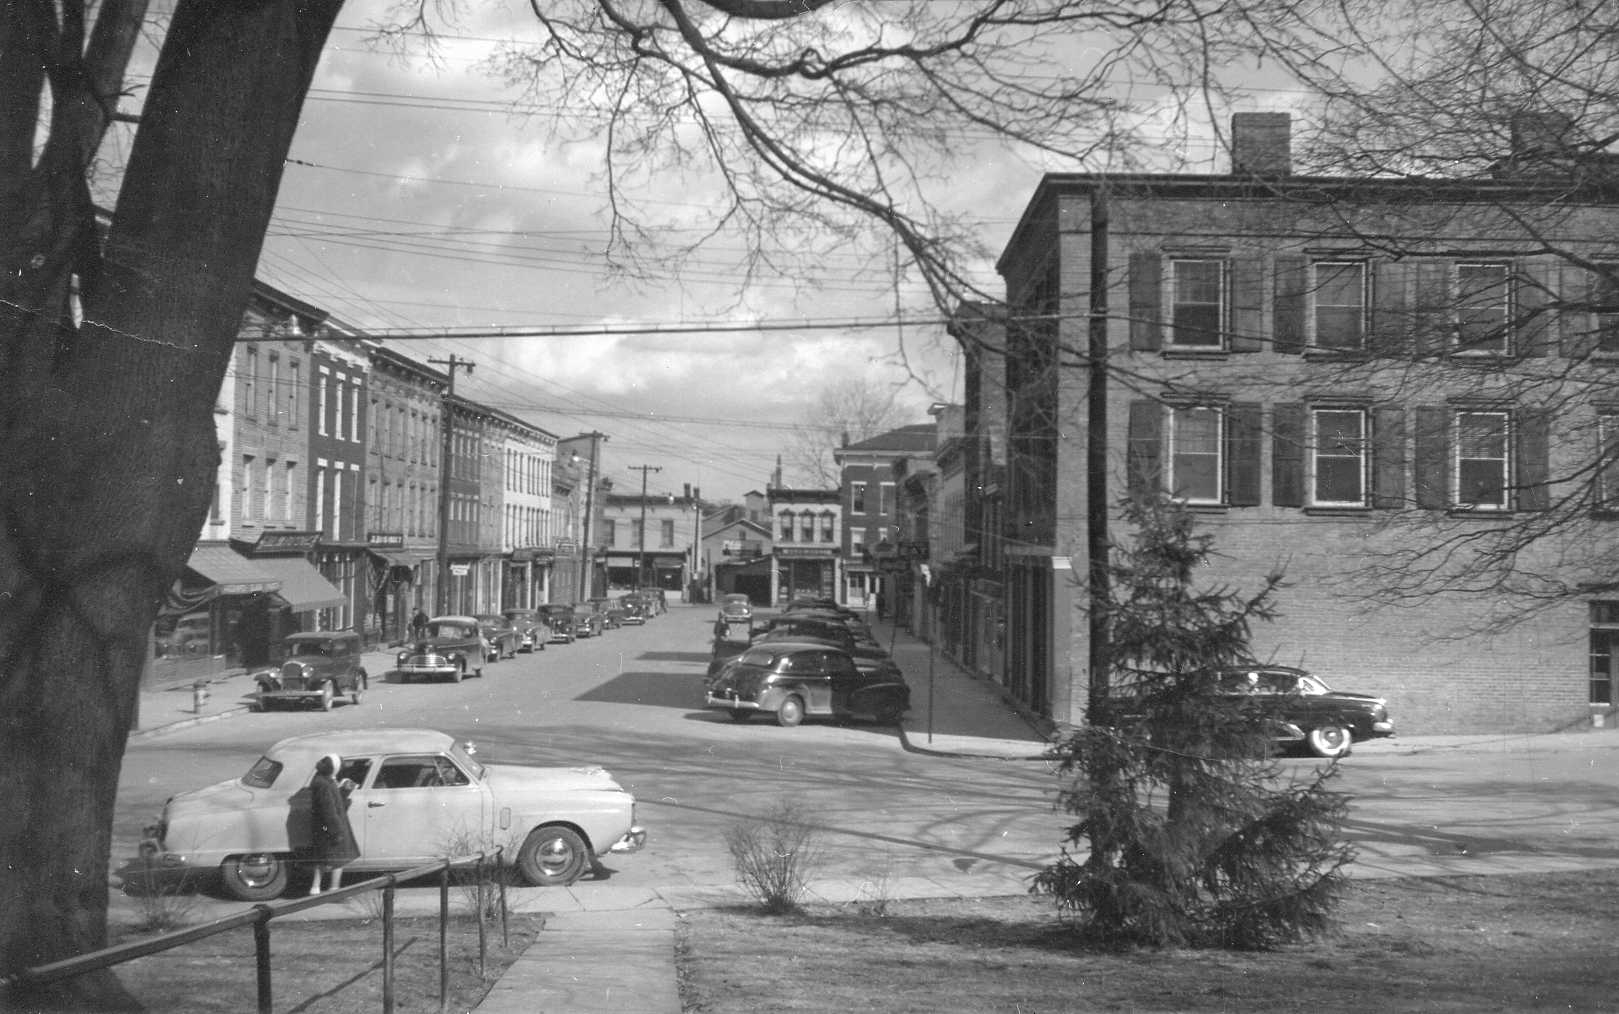 Reed Street, Coxsackie, NY, 1950s, photo by George T. Morgan